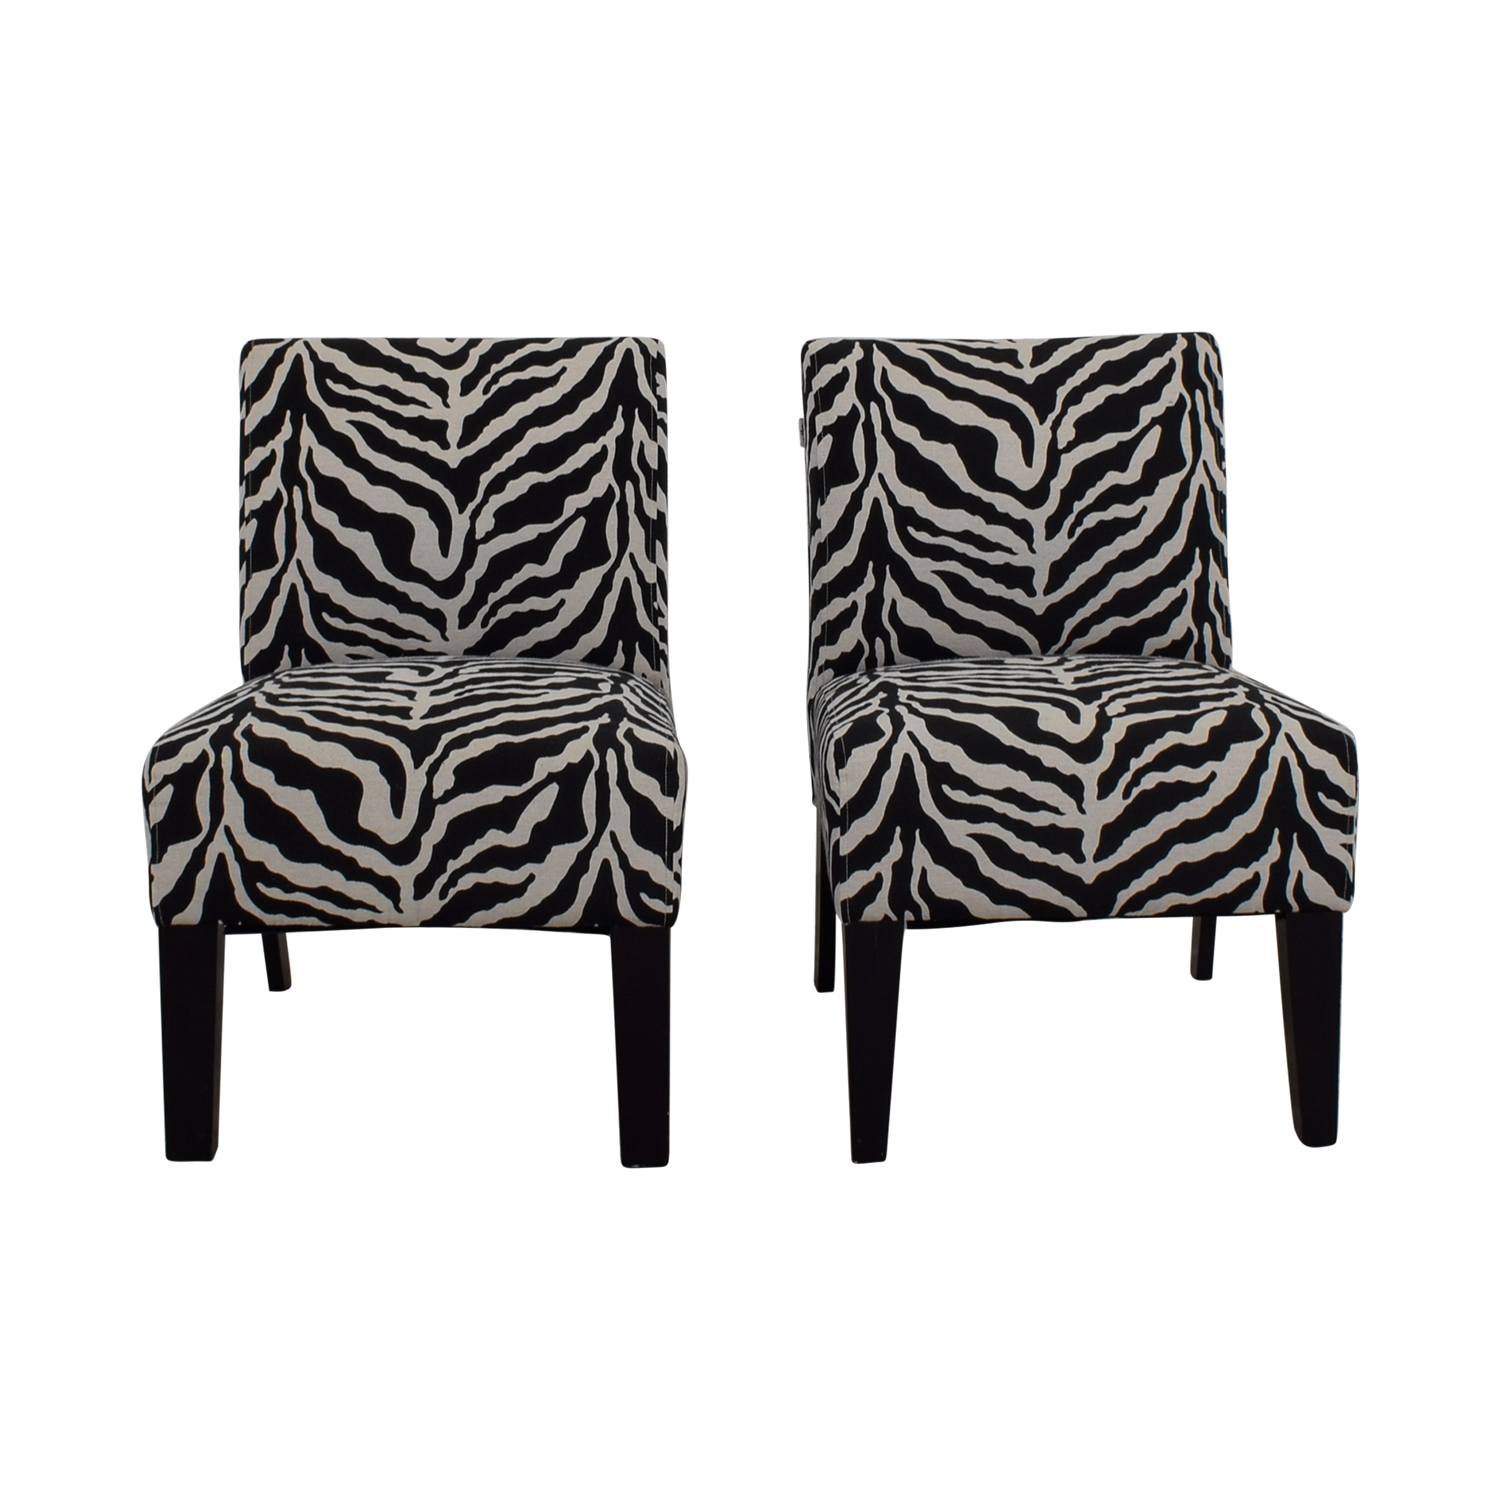 Aberly Aberly Zebra Accent Chairs for sale